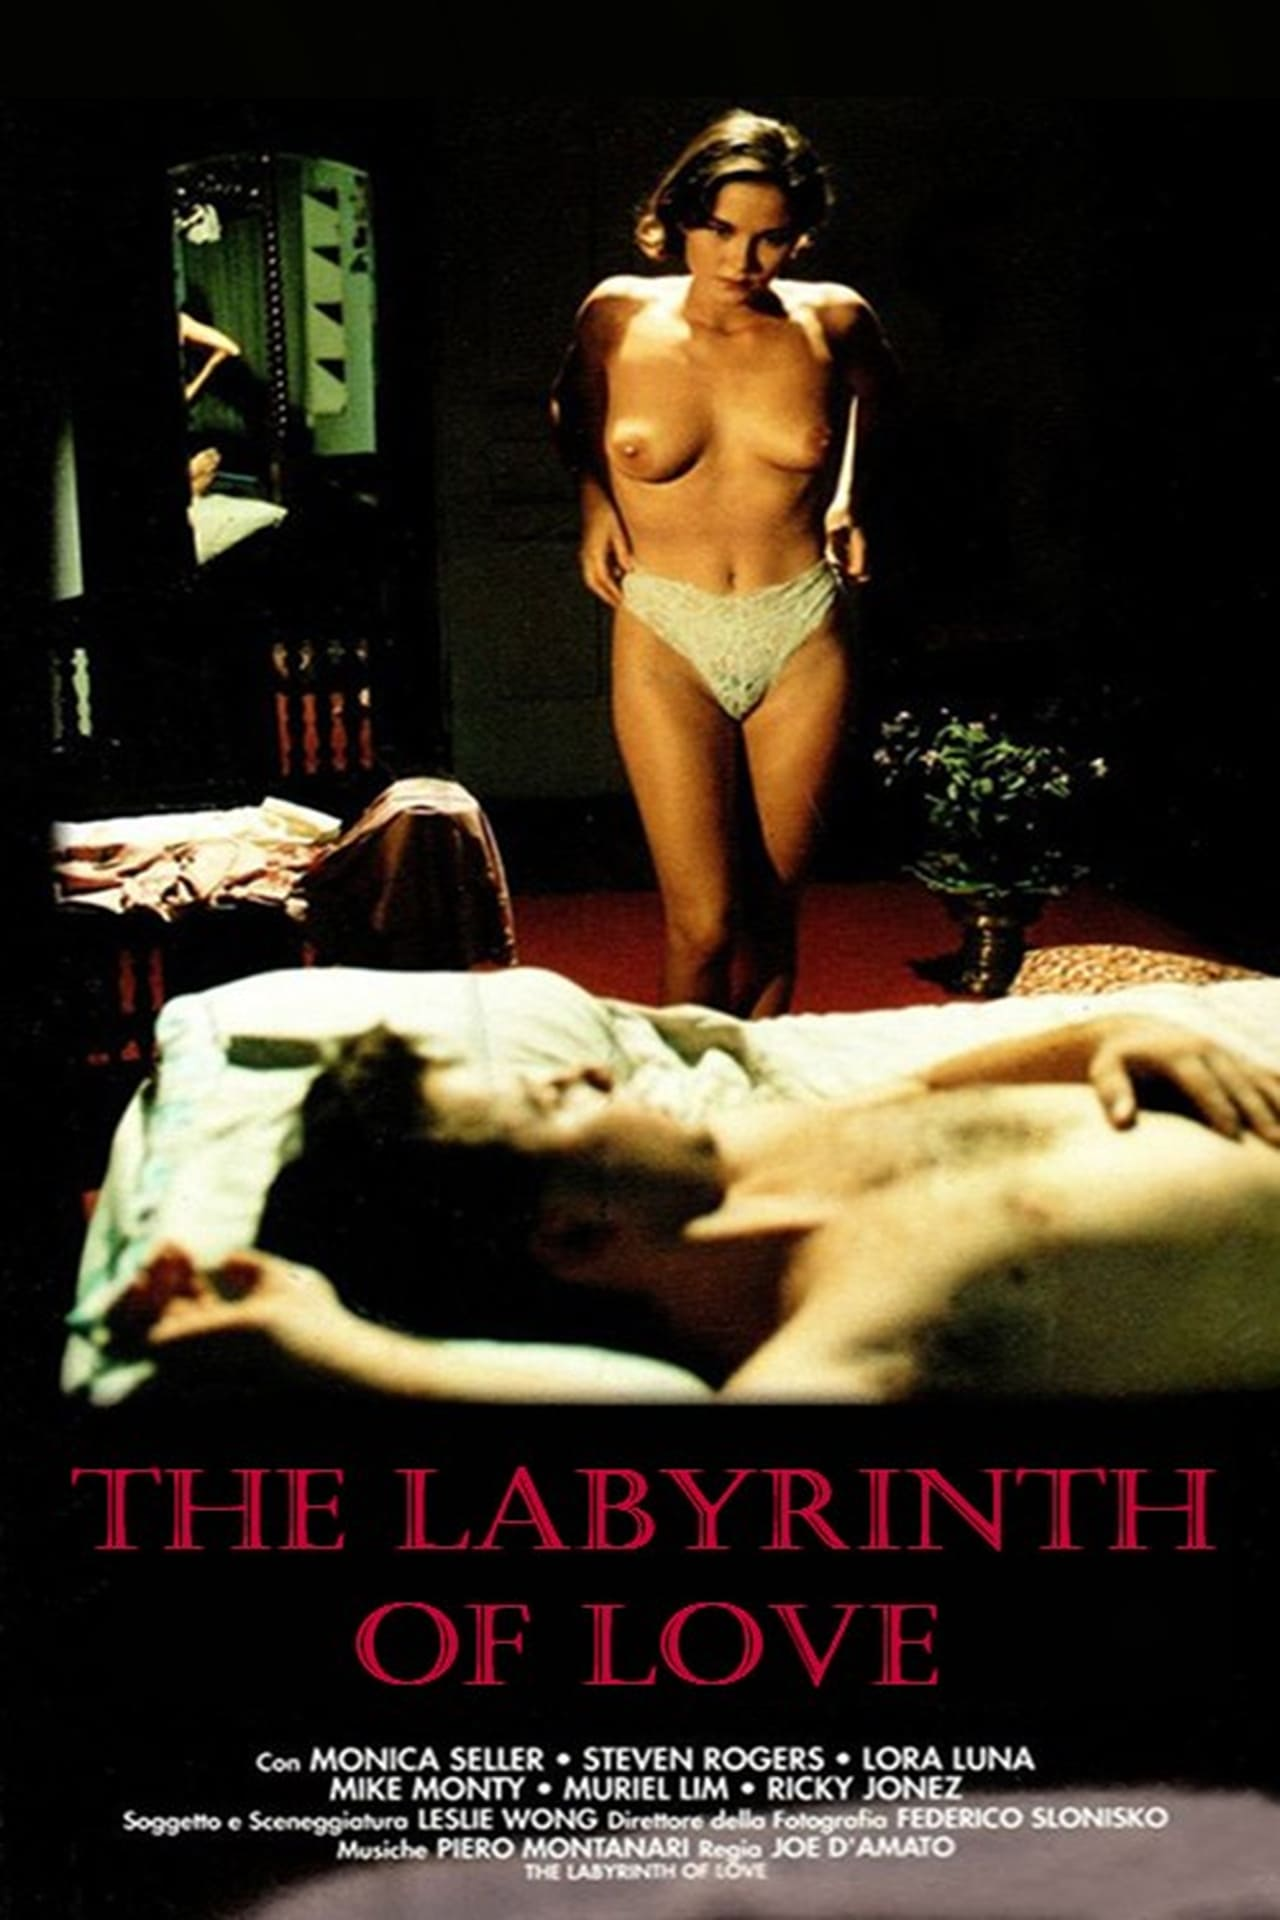 The Labyrinth of Love